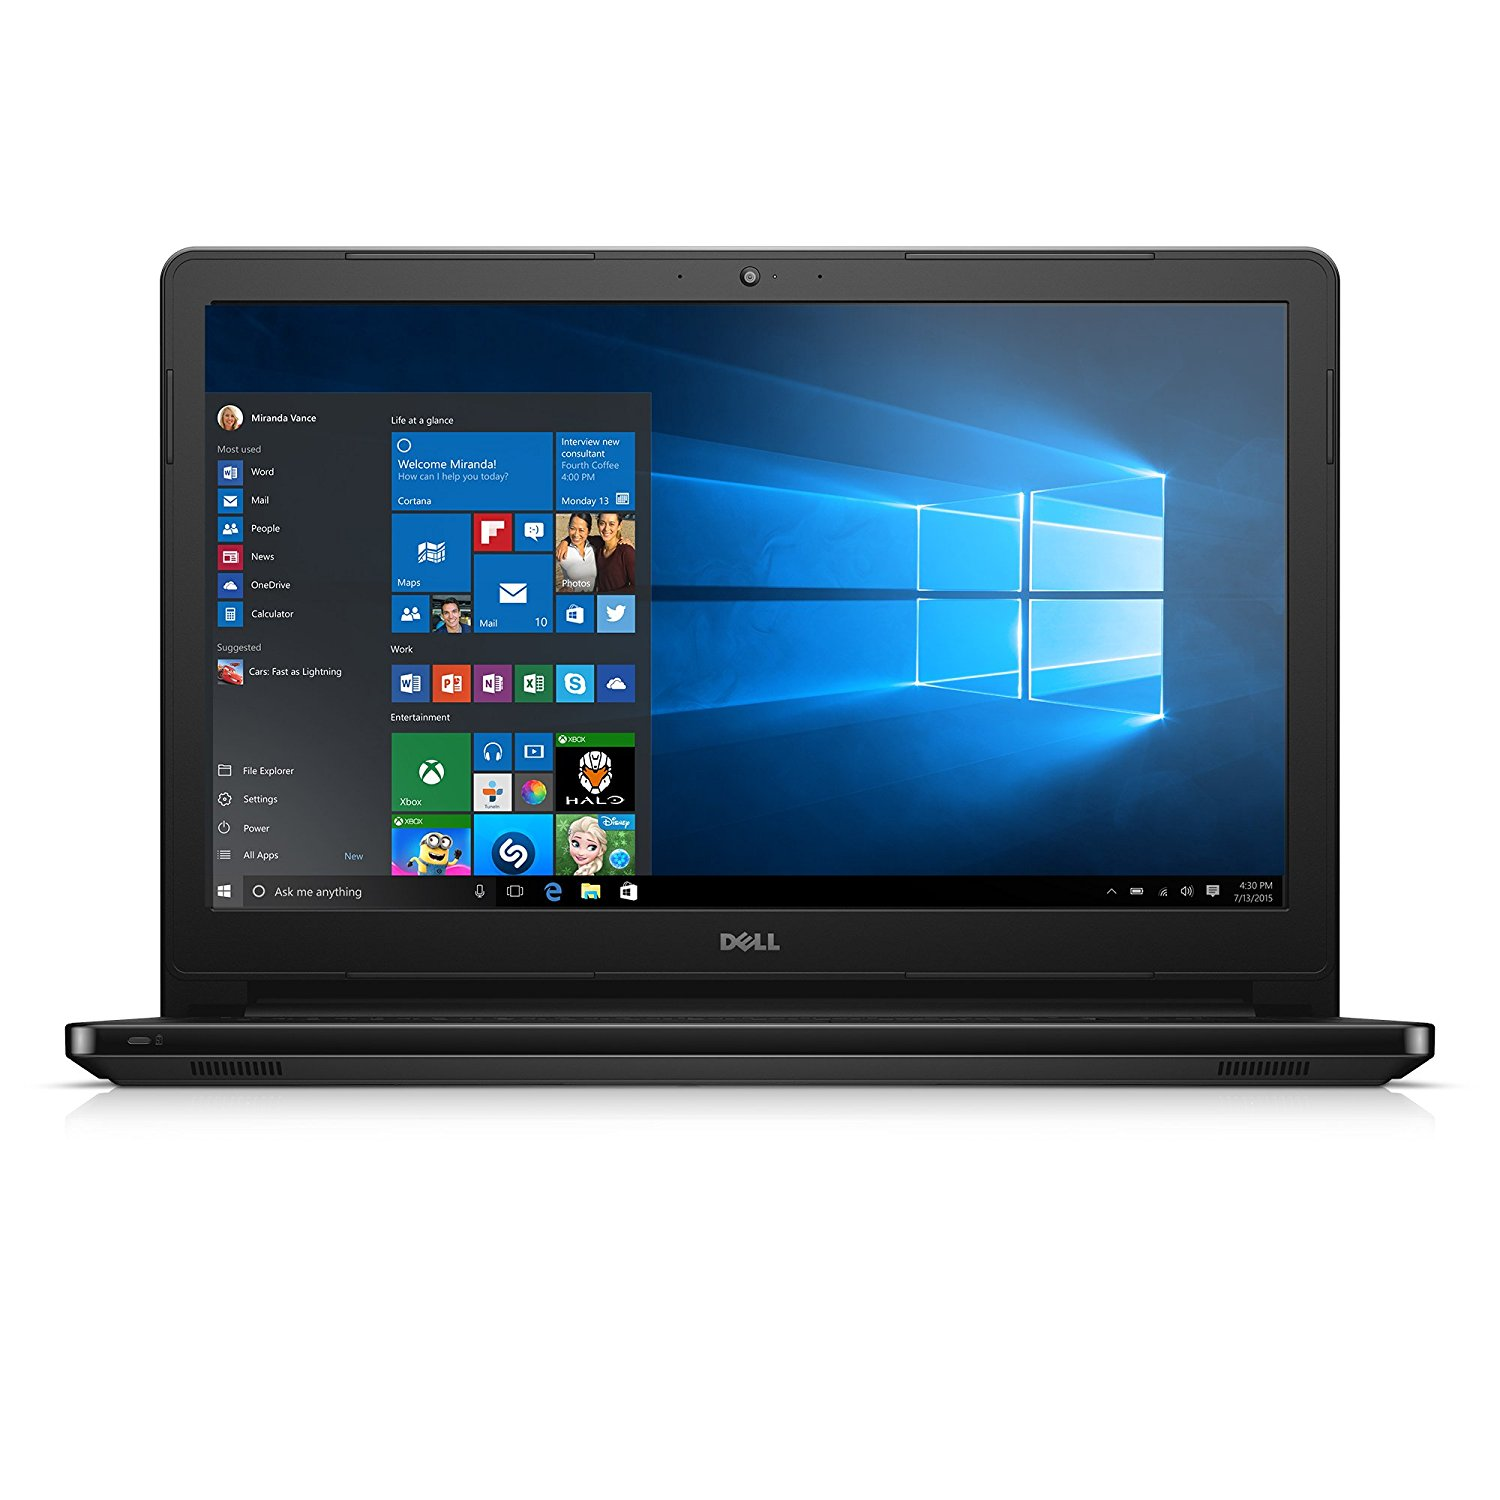 Dell Inspiron i5555 Premium High Performance Laptop PC, 15.6-inch HD LED-backlit Display, AMD A8-7410 Quad Core Processor, 6GB DDR3L RAM, 500GB HDD, DVD +/- RW, Radeon R5 Graphics, Windows 10